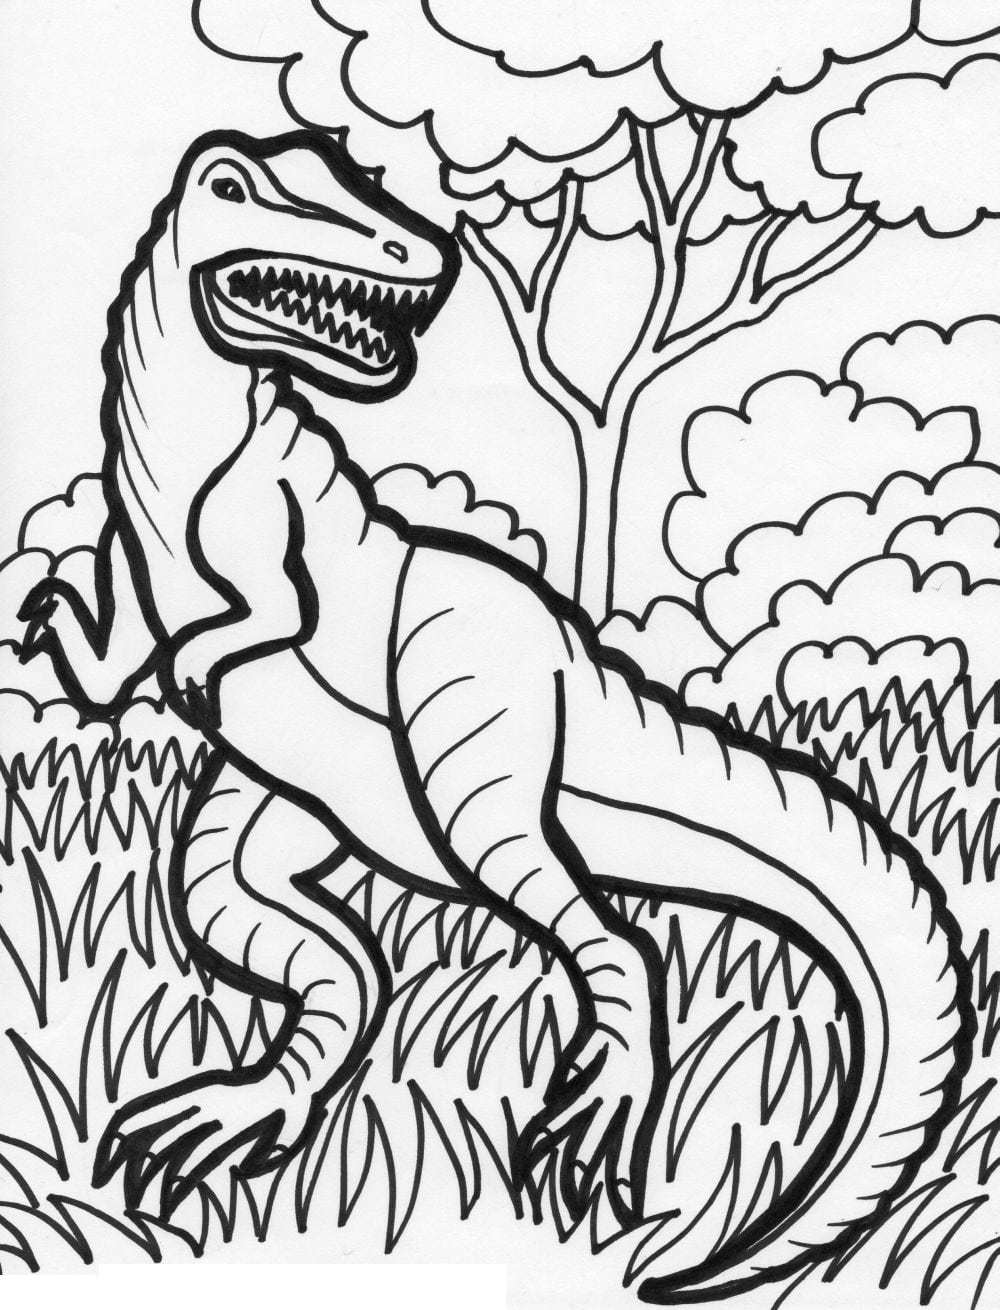 36 Dinosaur Coloring Pages For Kids, Dinosaur Coloring Pages Free